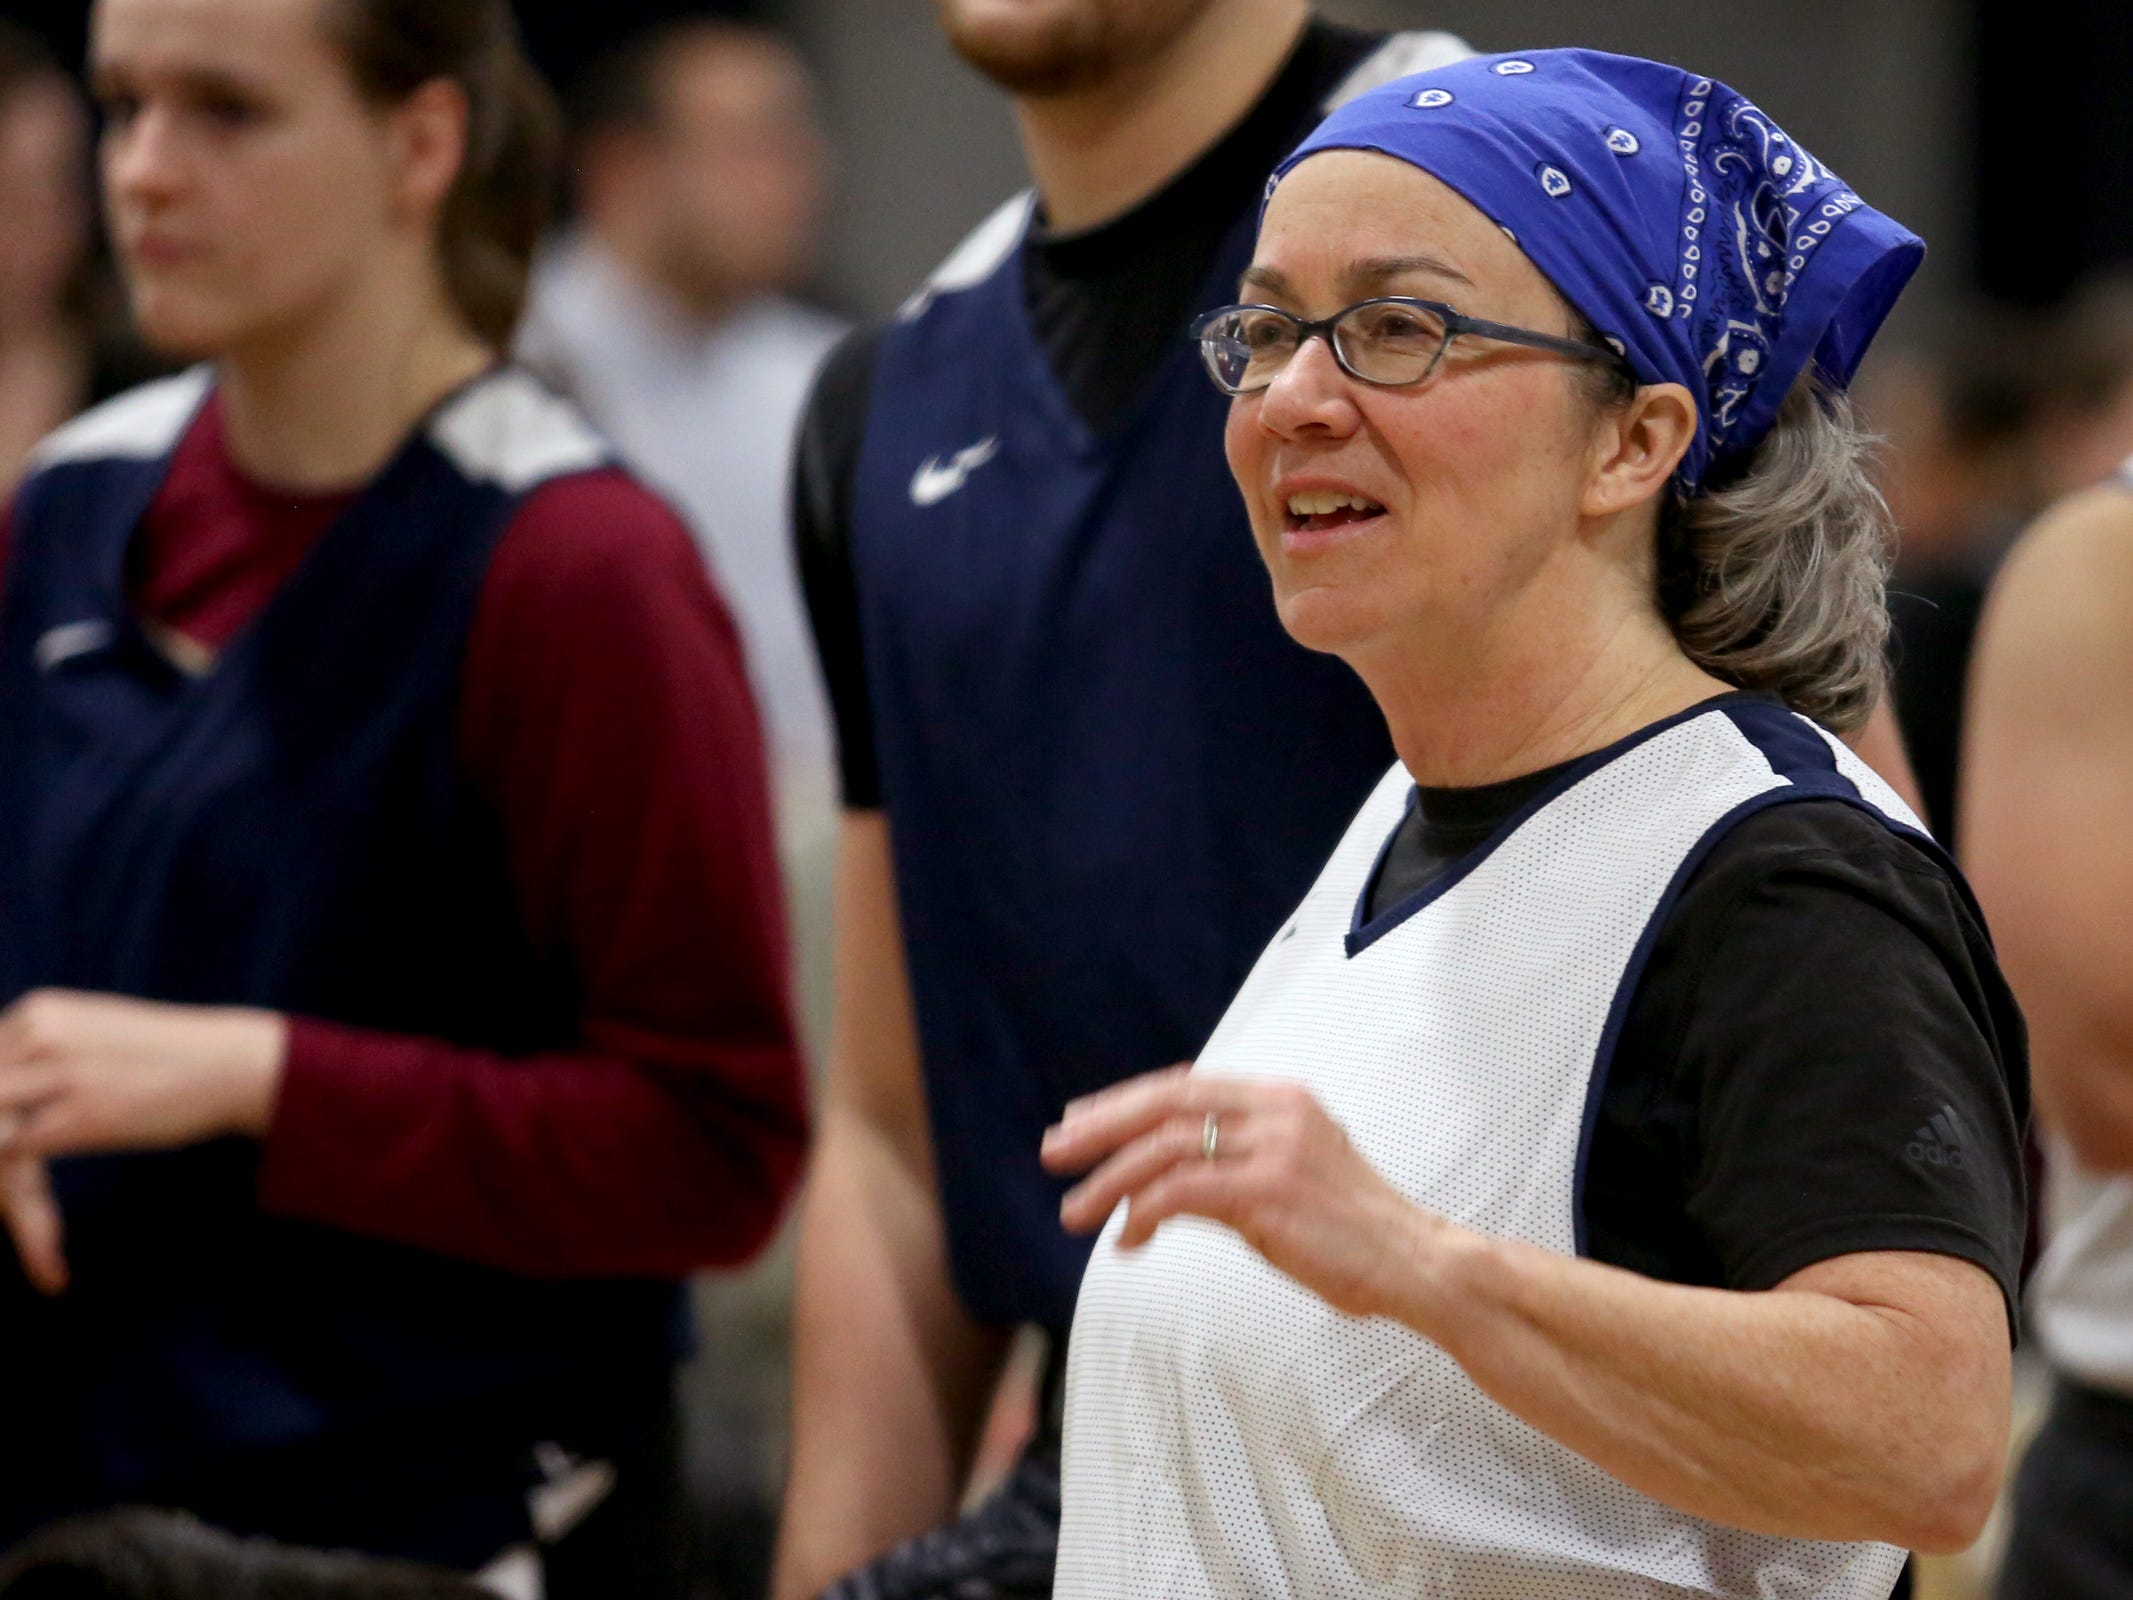 Rep. Barbara Smith Warner gathers with other players before the start of the second annual House vs. Senate charity basketball tournament at the Boys & Girls Club in Salem on March 13, 2019. The tournament raised more than $10,000 for the Oregon Alliance of Boys & Girls Clubs.